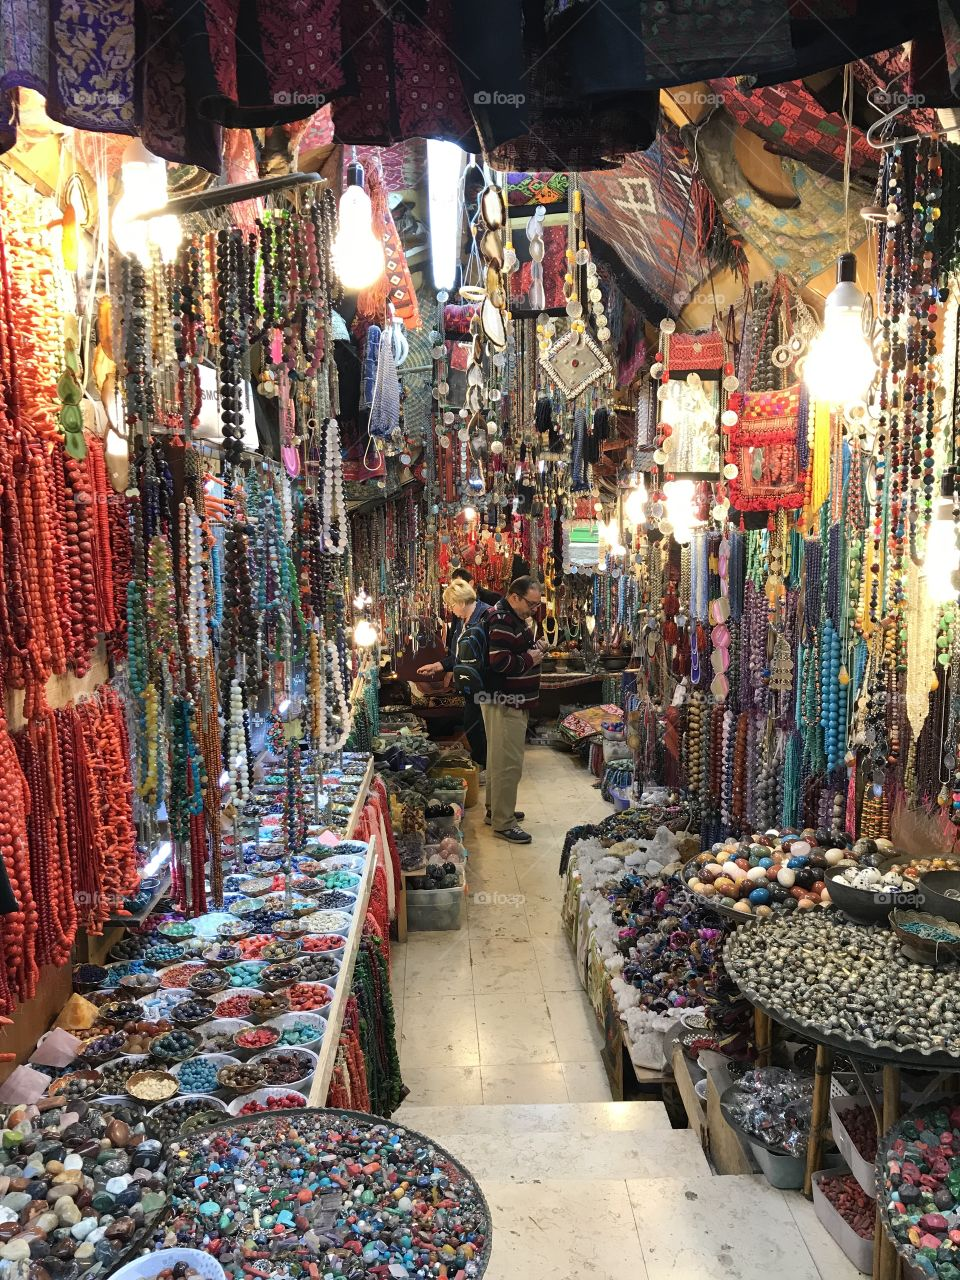 Colorful market in the Christian Quarter of the old City of Jerusalem, Israel.